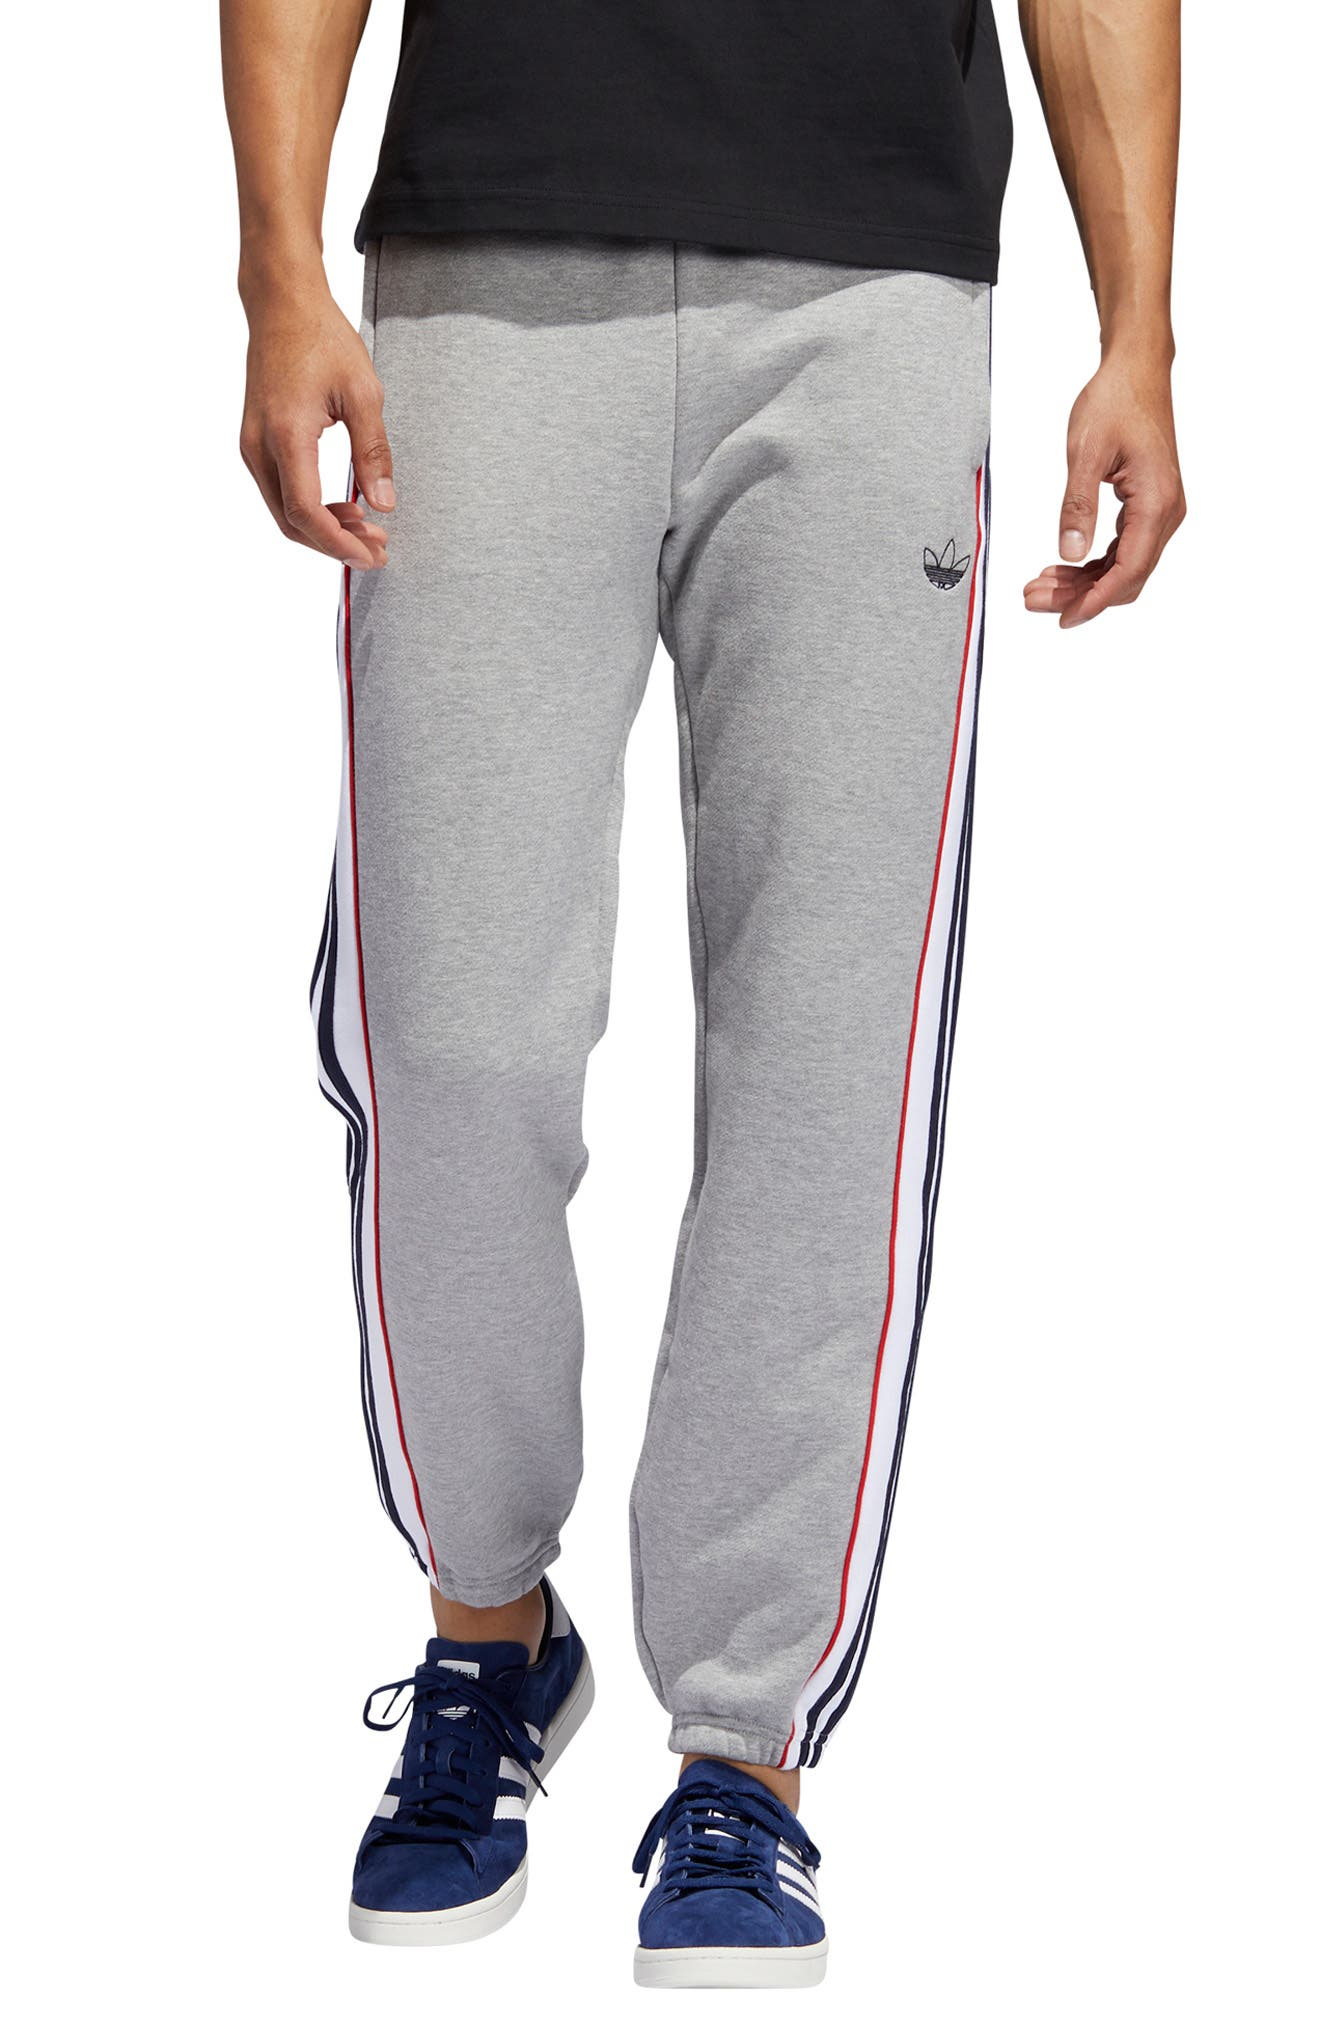 Men's Adidas Originals 3-Stripes Panel Sweatpants